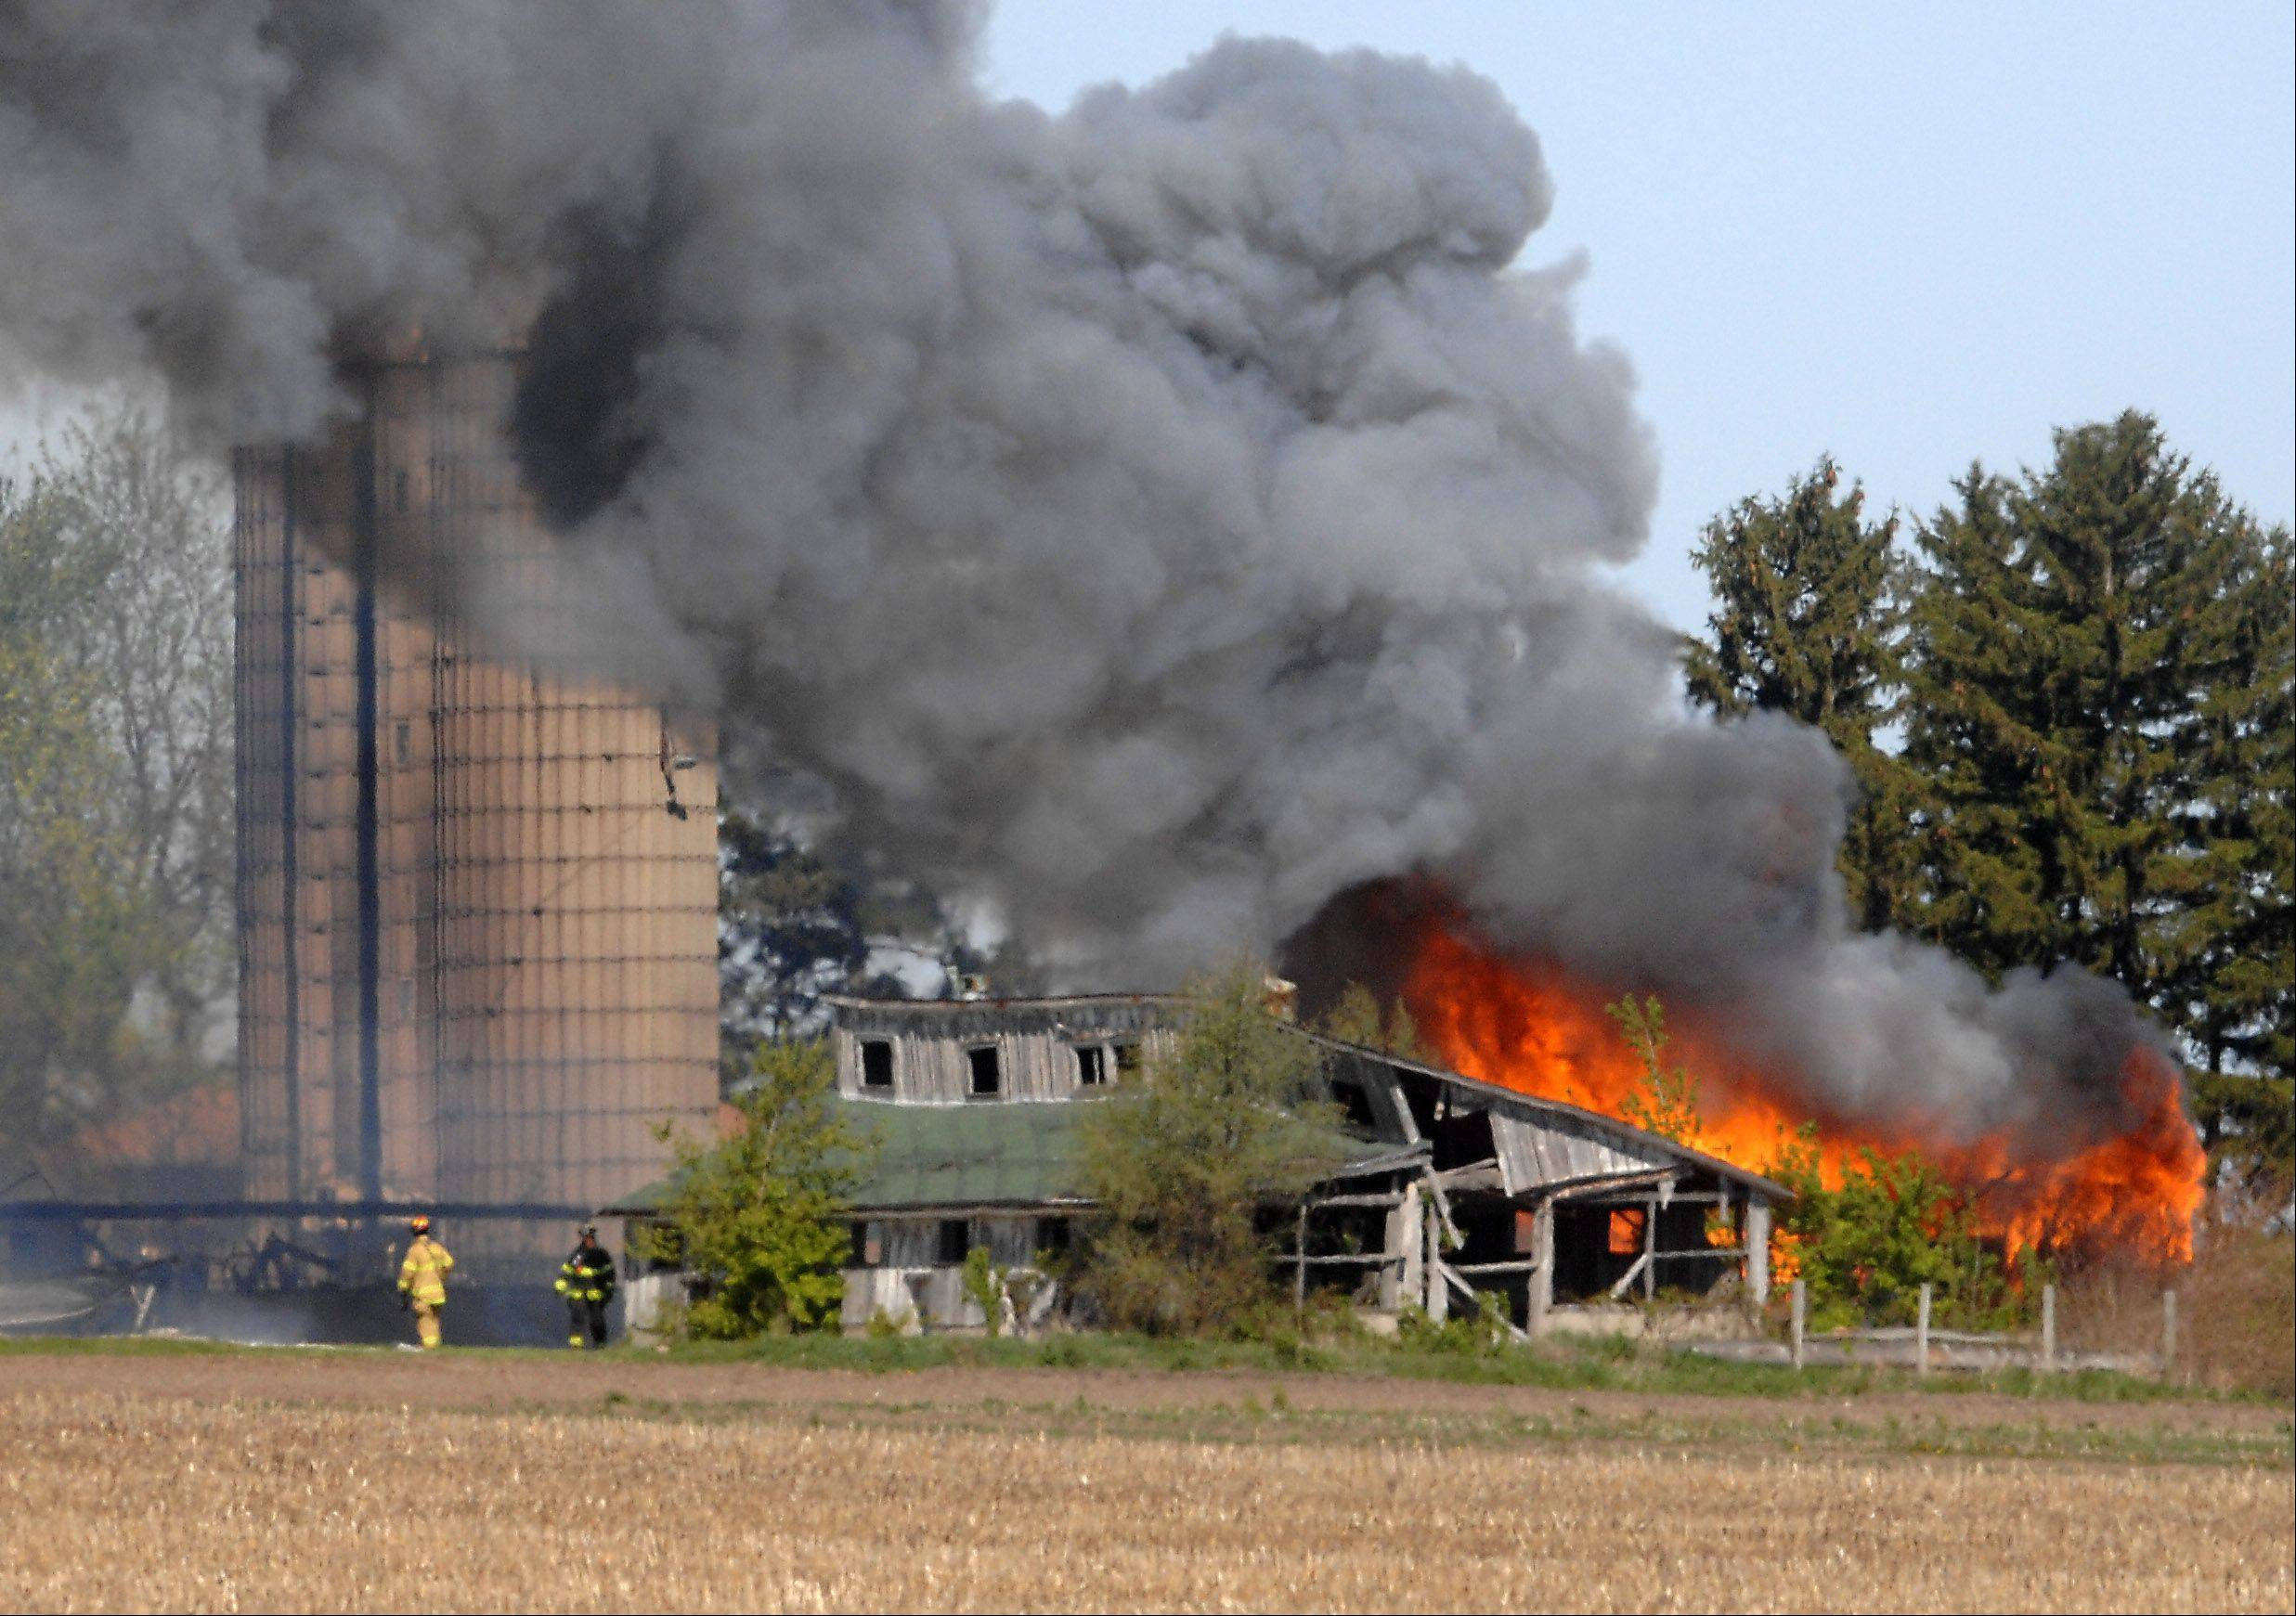 Barn fires in McHenry County under investigation